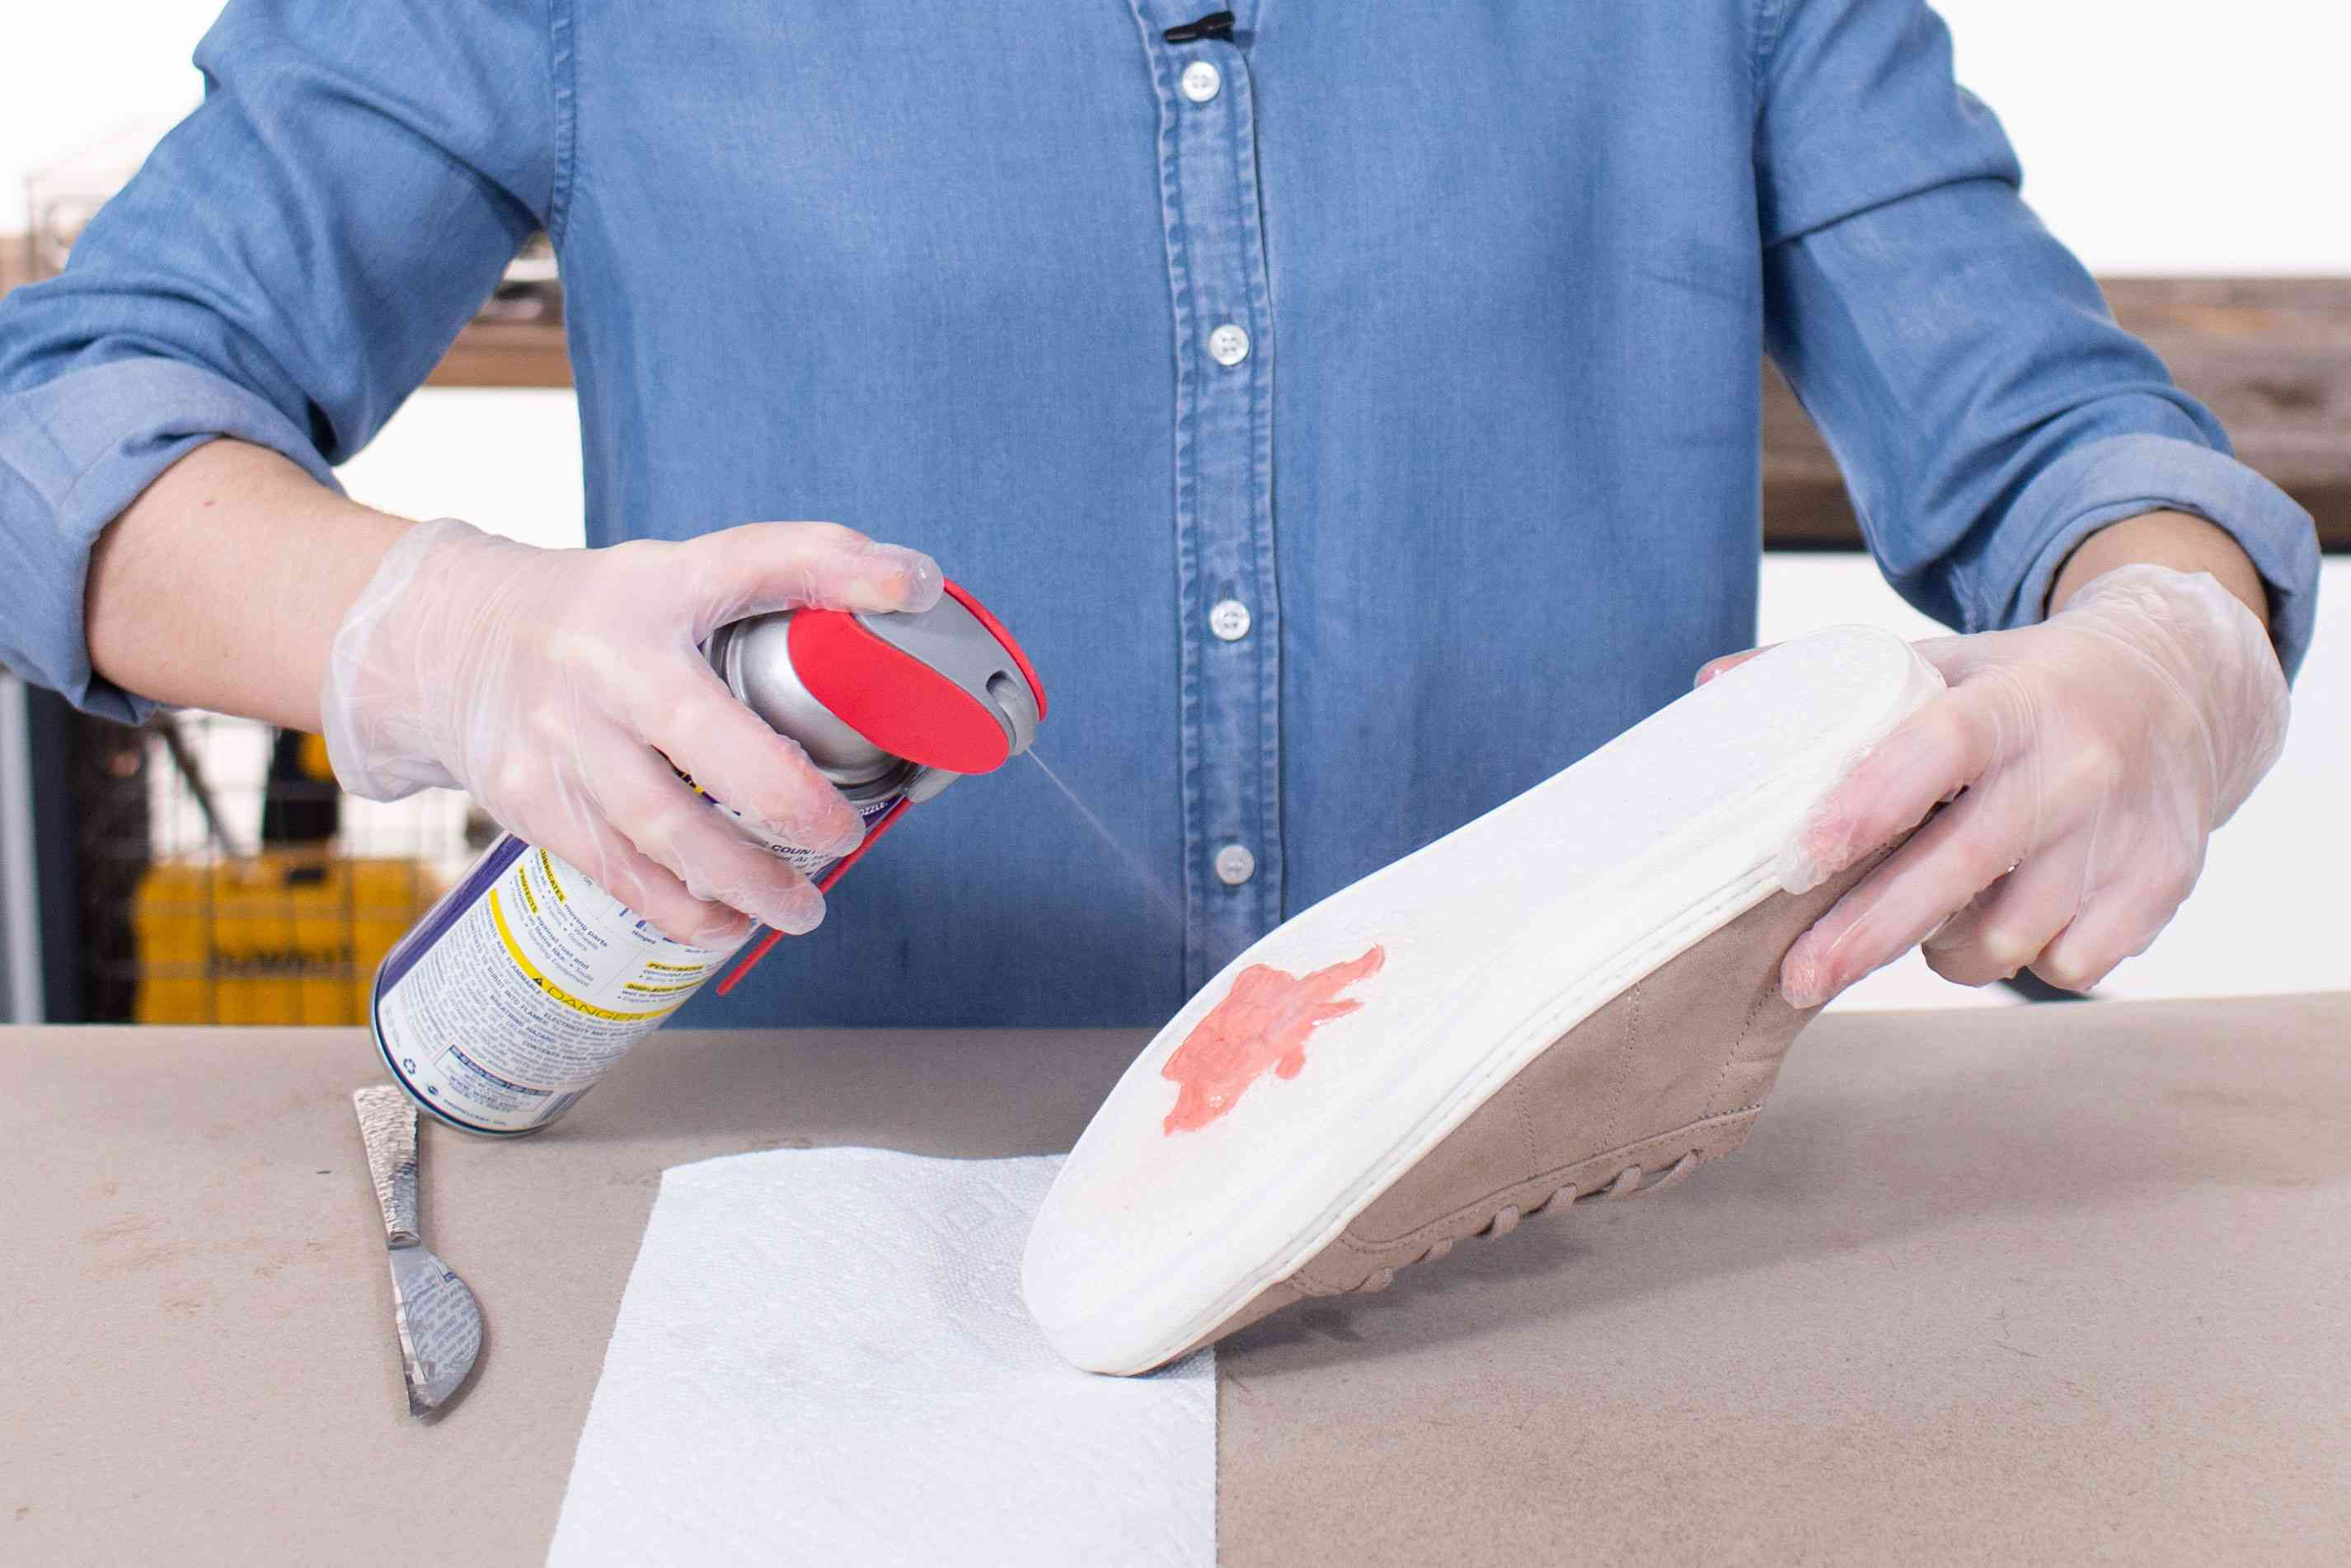 Spraying gum with WD-40